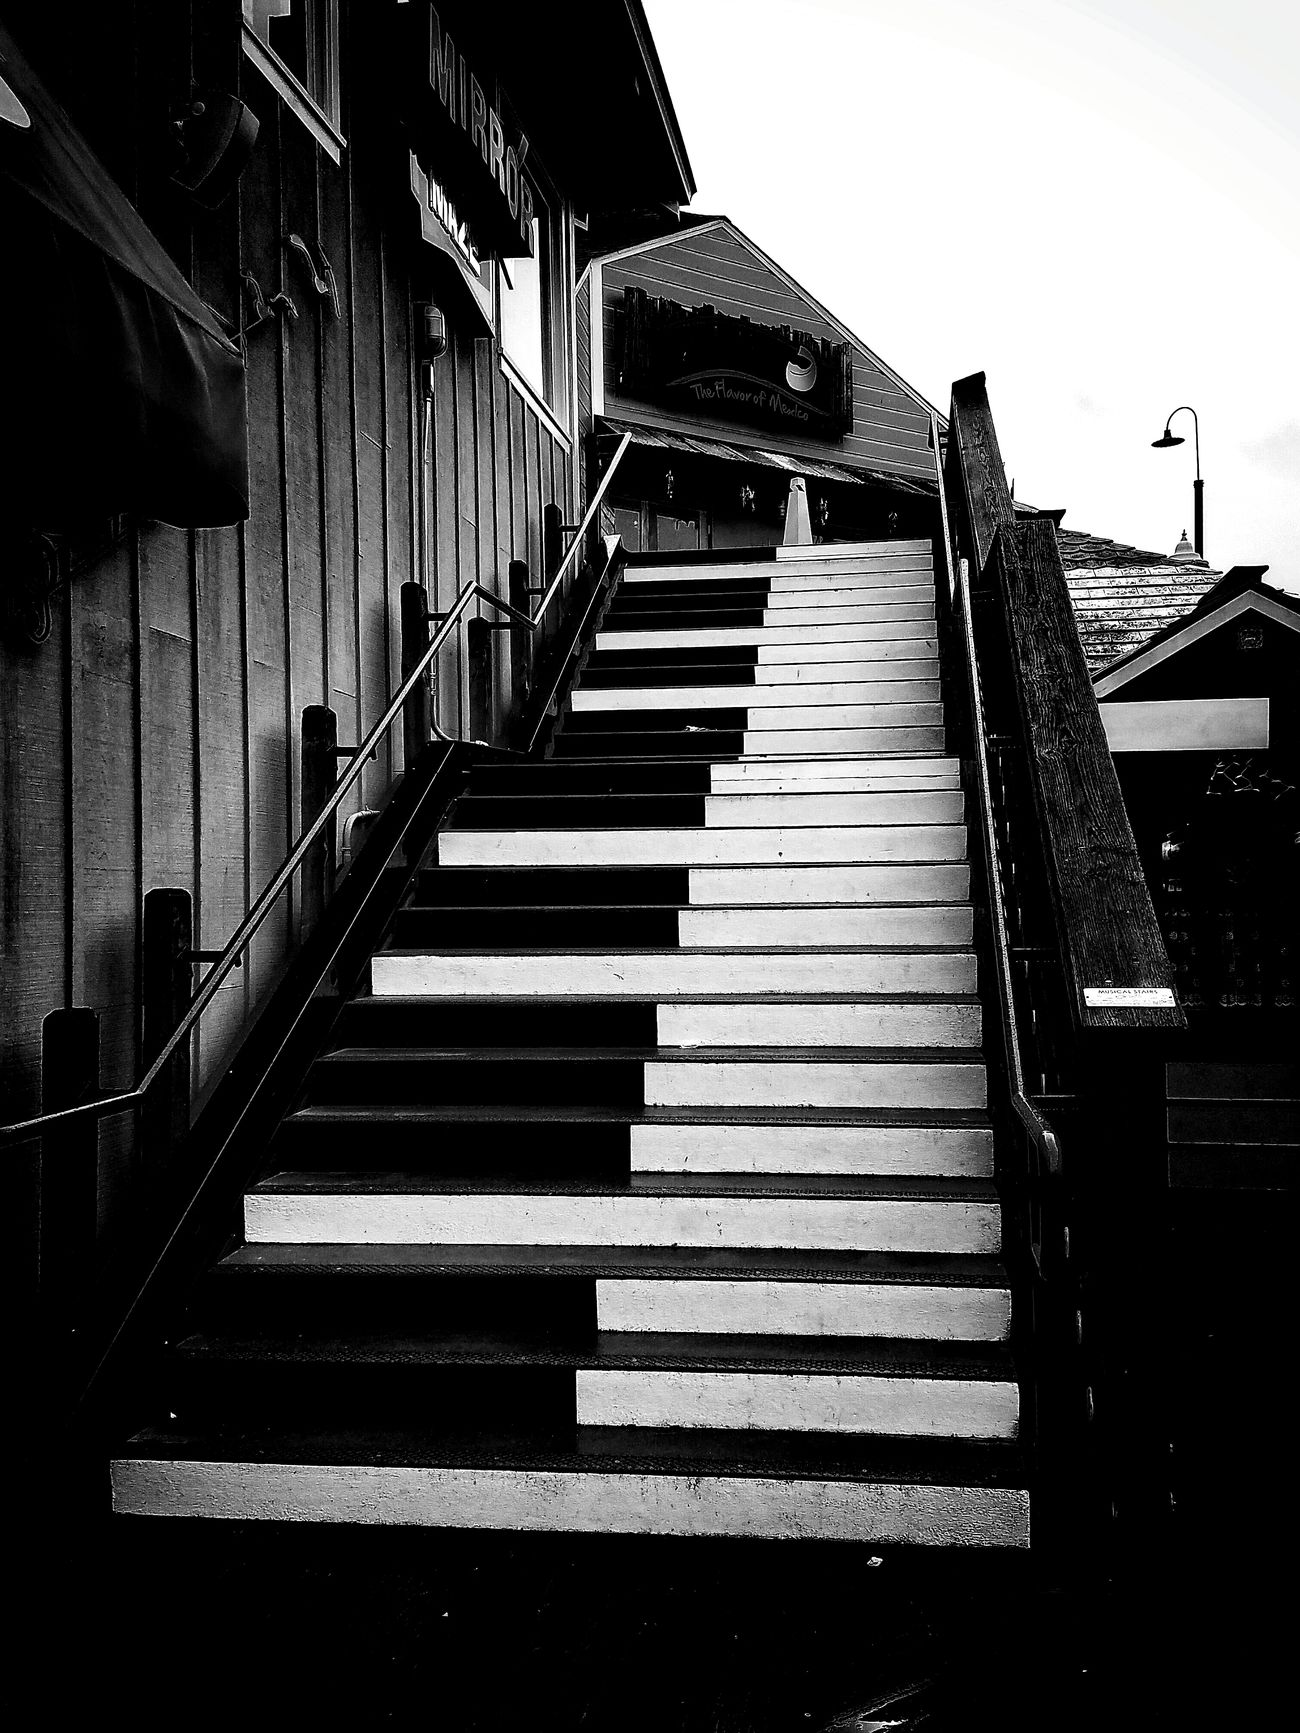 Steps And Staircases Steps Staircase Northcalifornia Coast Coastal First Eyeem Photo Built Structure Architecture No People Outdoors Day Piano Moments Piano Key Piano Piano Keys San Francisco SanFranciscoBay Bay Pier Pier 39 EyeEmNewHere EyeEmNewHere